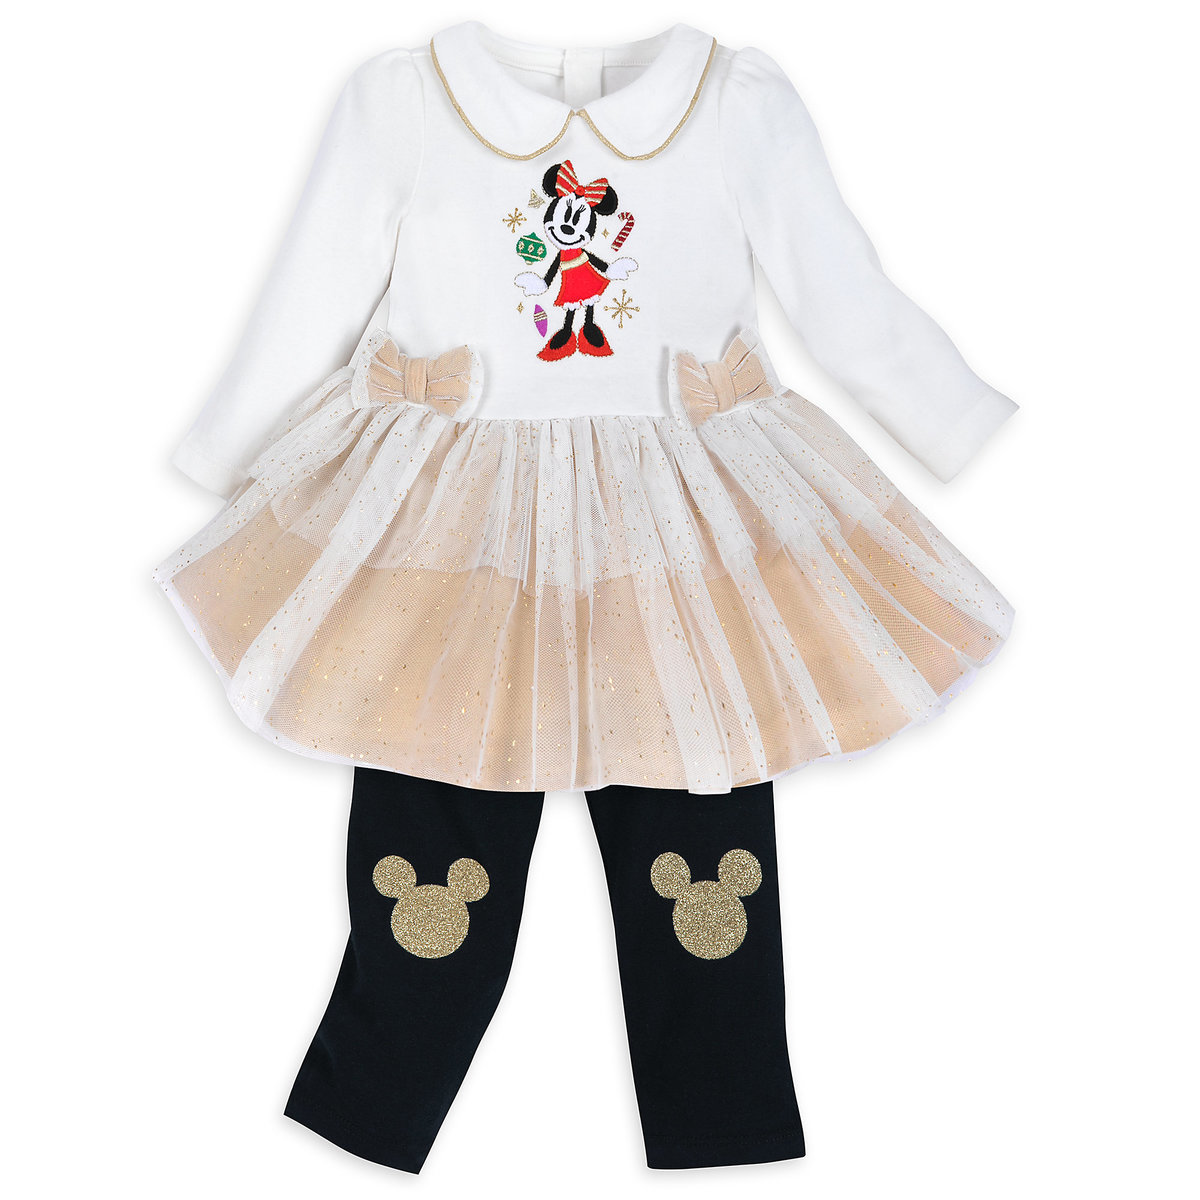 d51e2e6d96d46 Product Image of Minnie Mouse Holiday Tutu Dress and Leggings Set for Baby  # 1